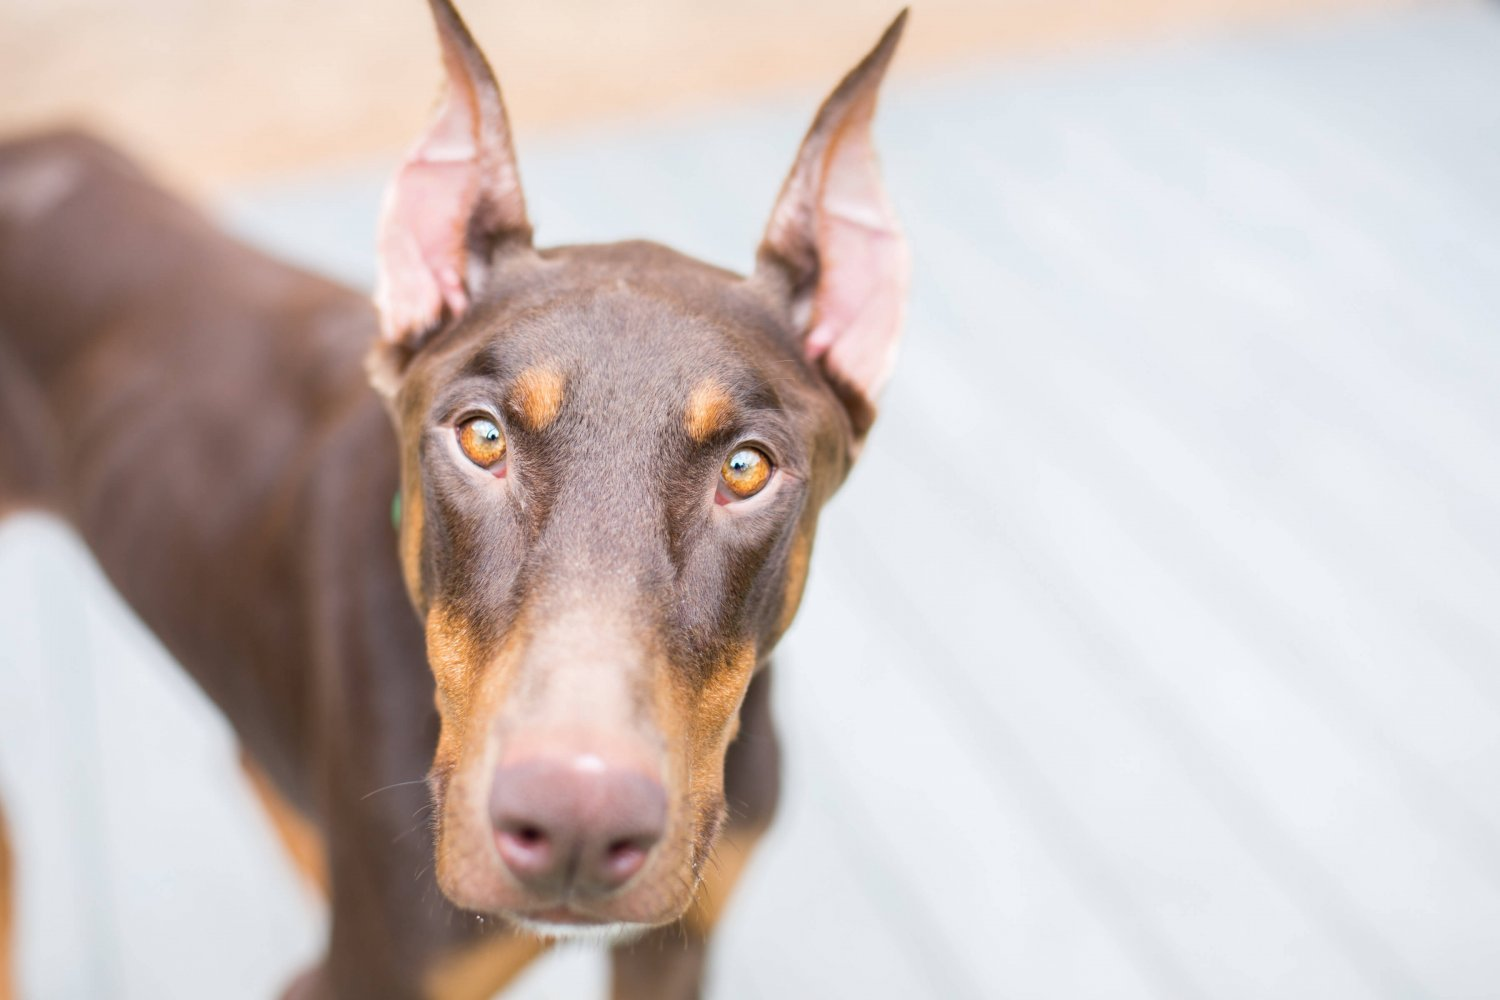 Zurixx donates to the Doberman Rescue Shelter for the fifth year in a row. This generous donation assists the organization in finding homes for the rescue dogs.